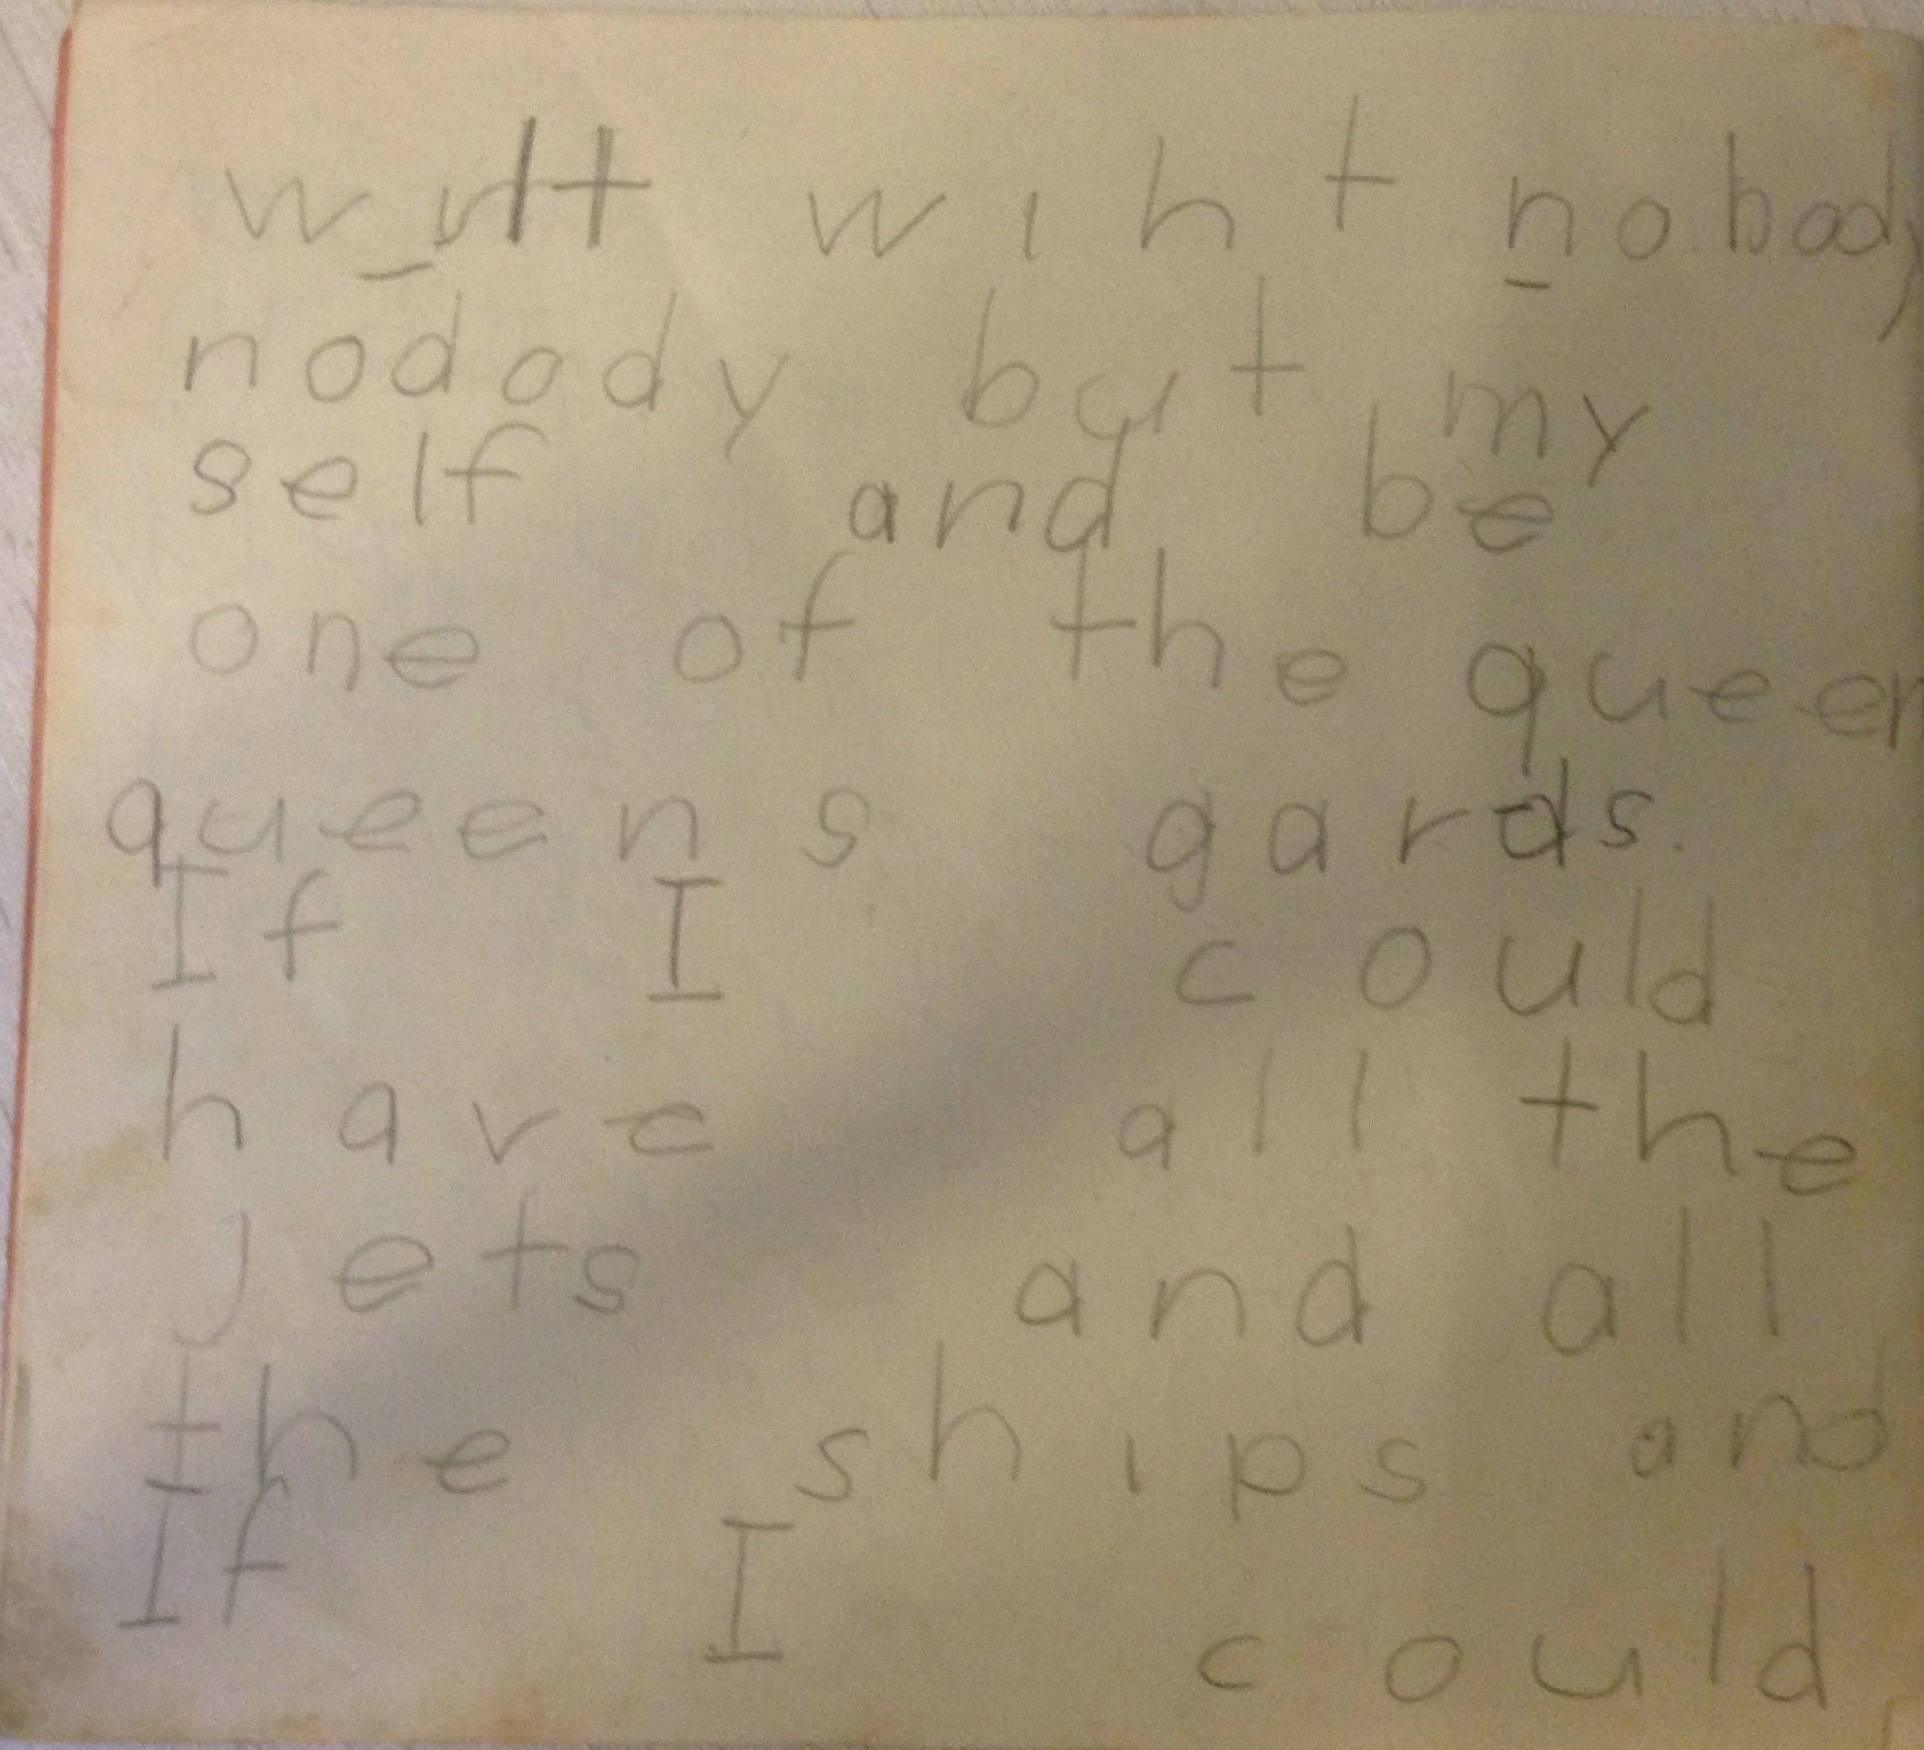 Andy's clearly articulated plan to circumnavigate alone in a yacht, written at age 6